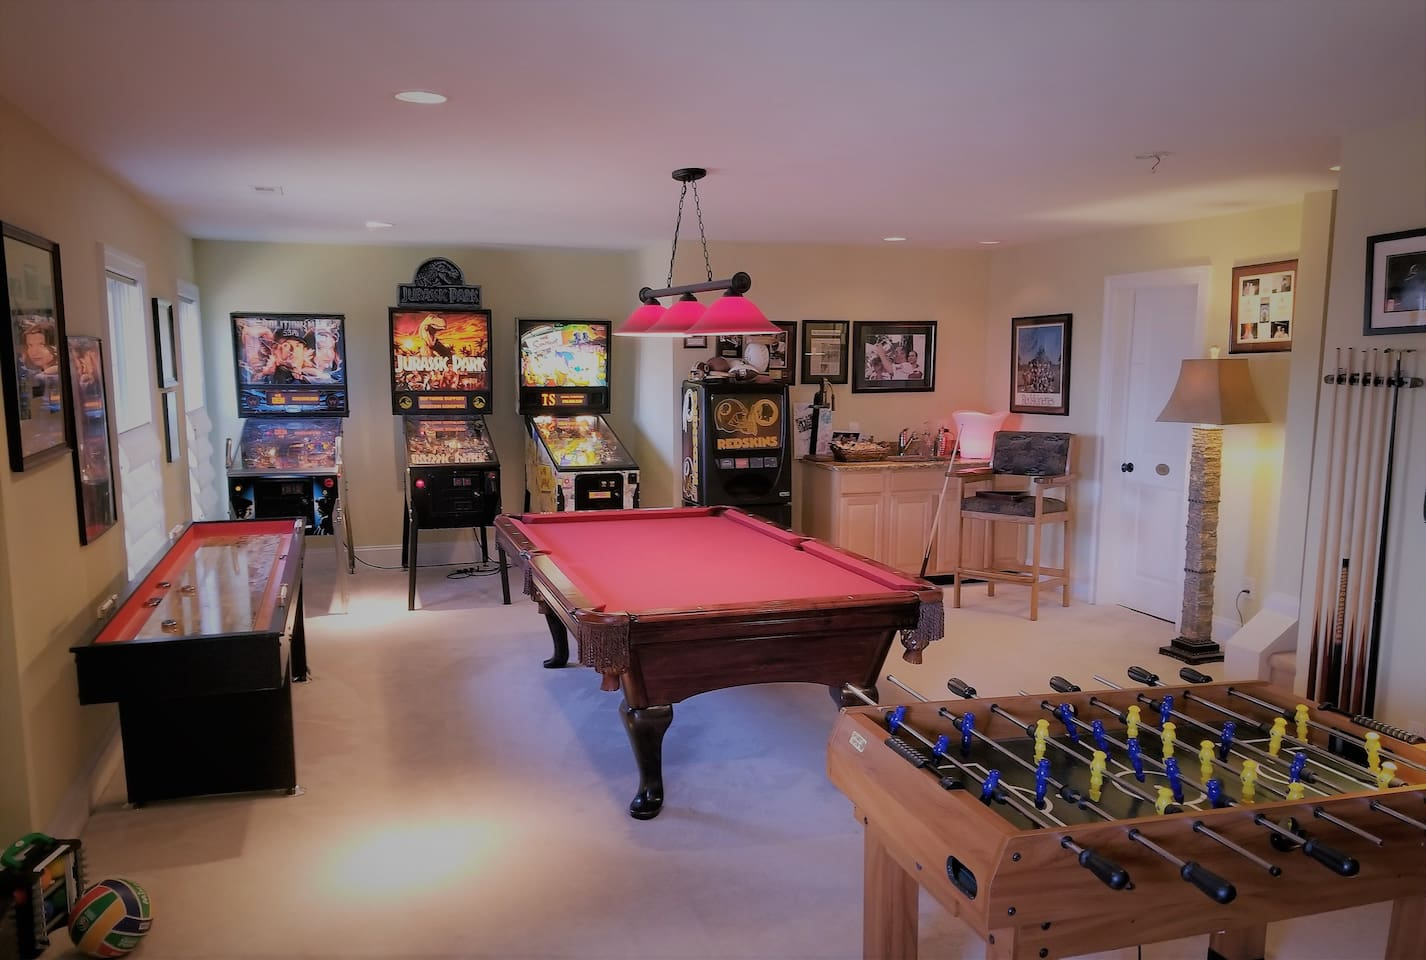 The ultimate game room with 3 pinball machines, shuffle board, fussball, pool table and so much more. No other airbnb has this mind blowing fun :)